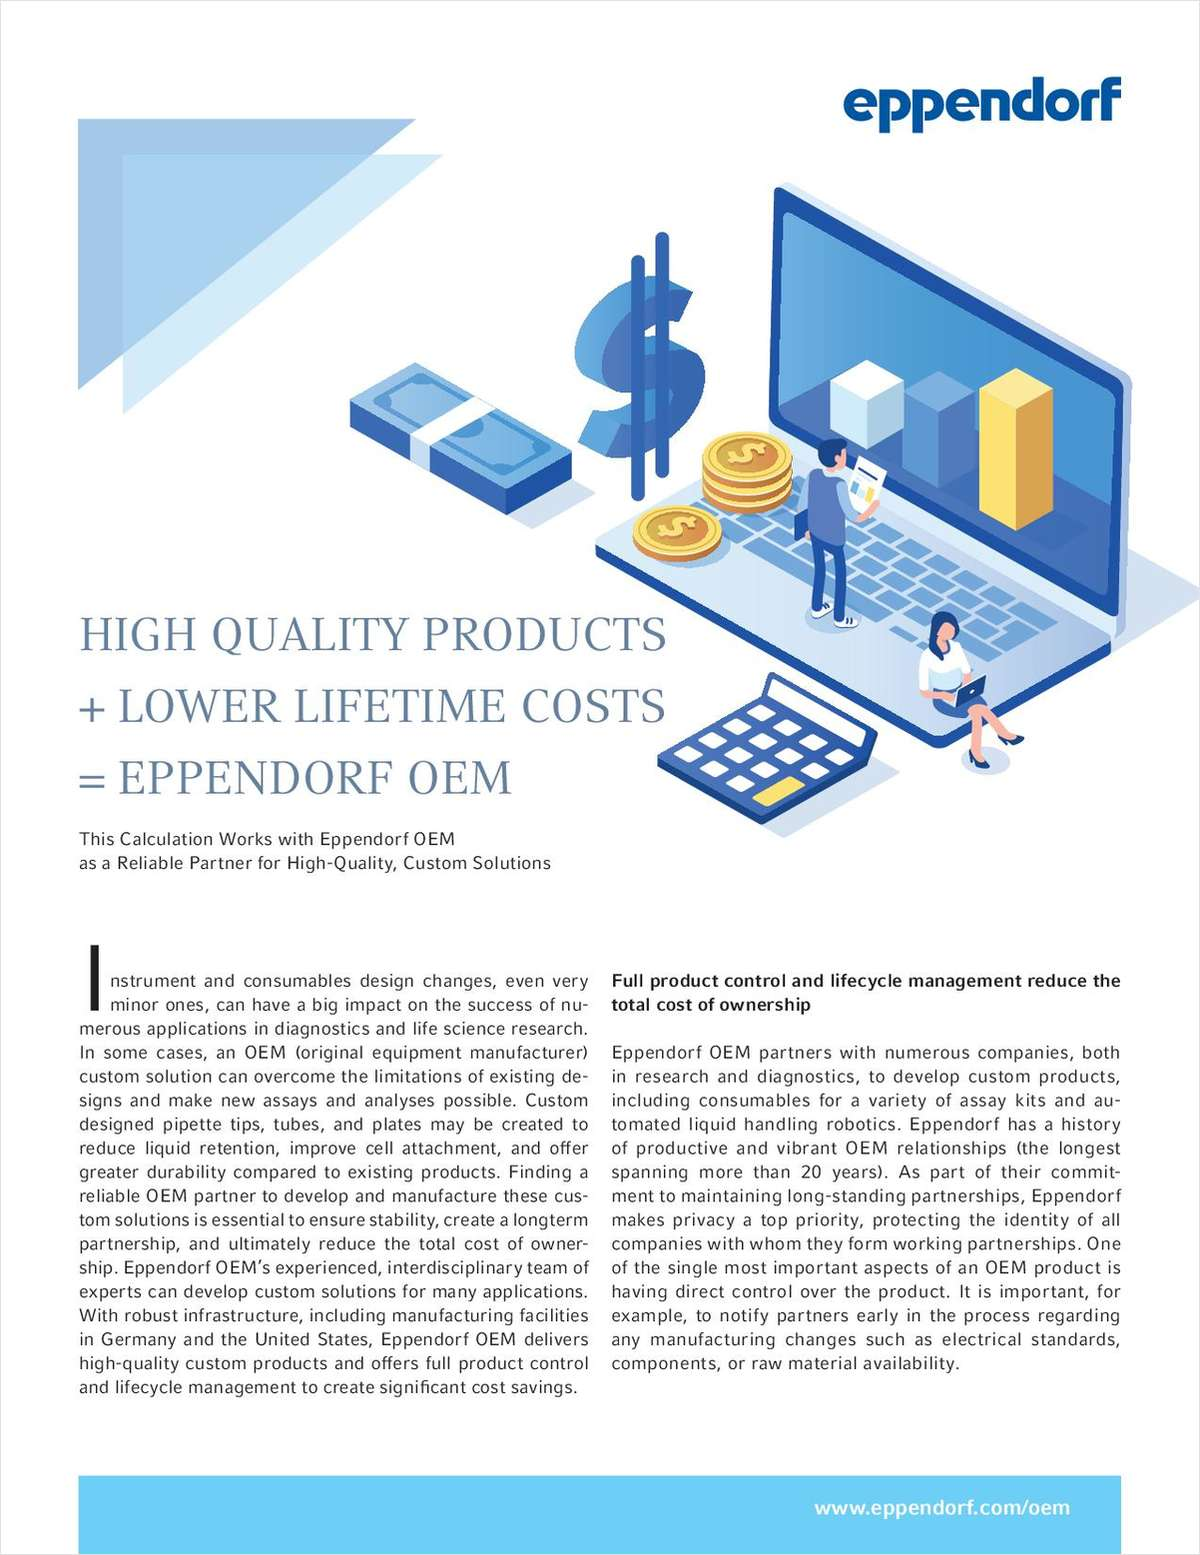 High Quality Products + Lower Lifetime Costs = Eppendorf OEM